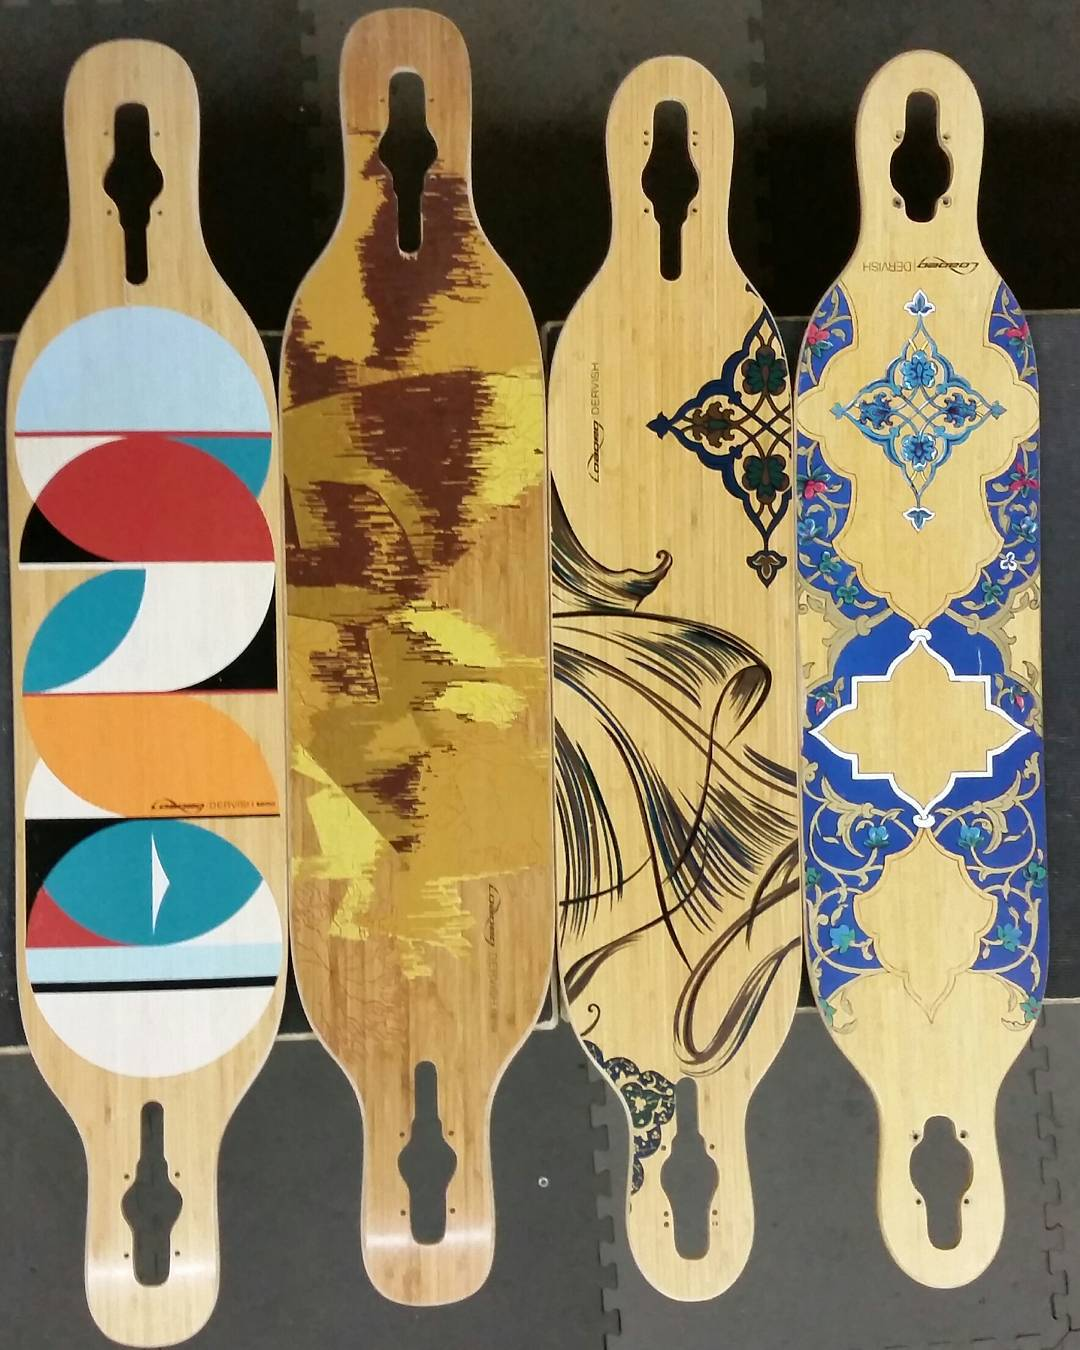 Timeline of the #Dervish graphics over the years.  Who wore it best?! #DervishSama #LoadedBoards